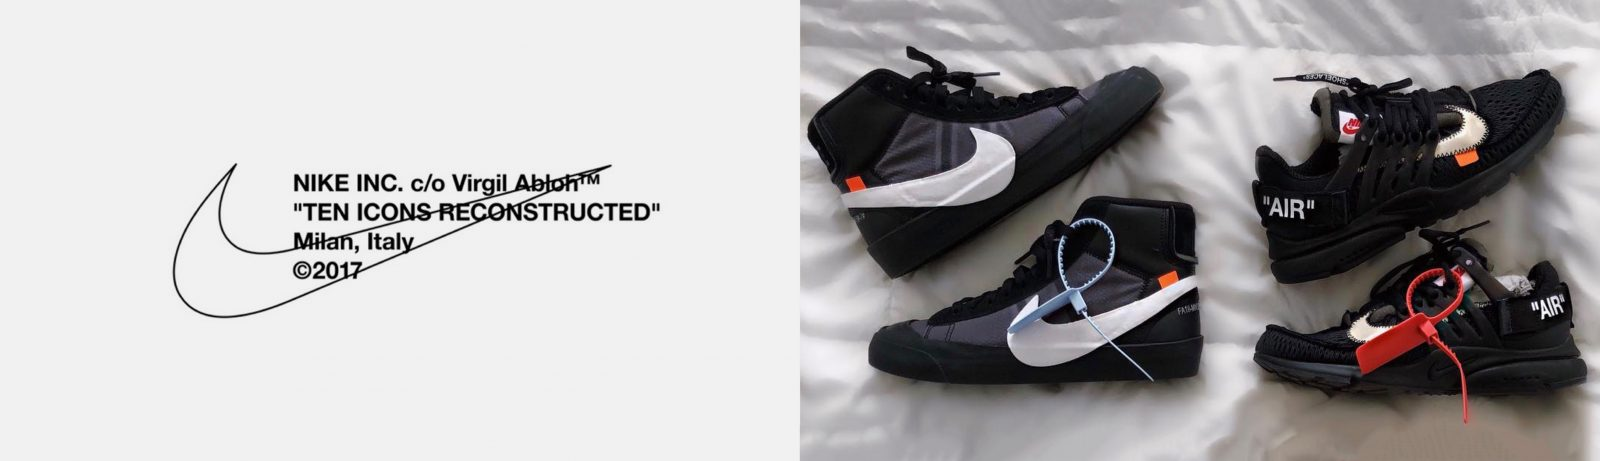 Women's Off-White Nike Trainers